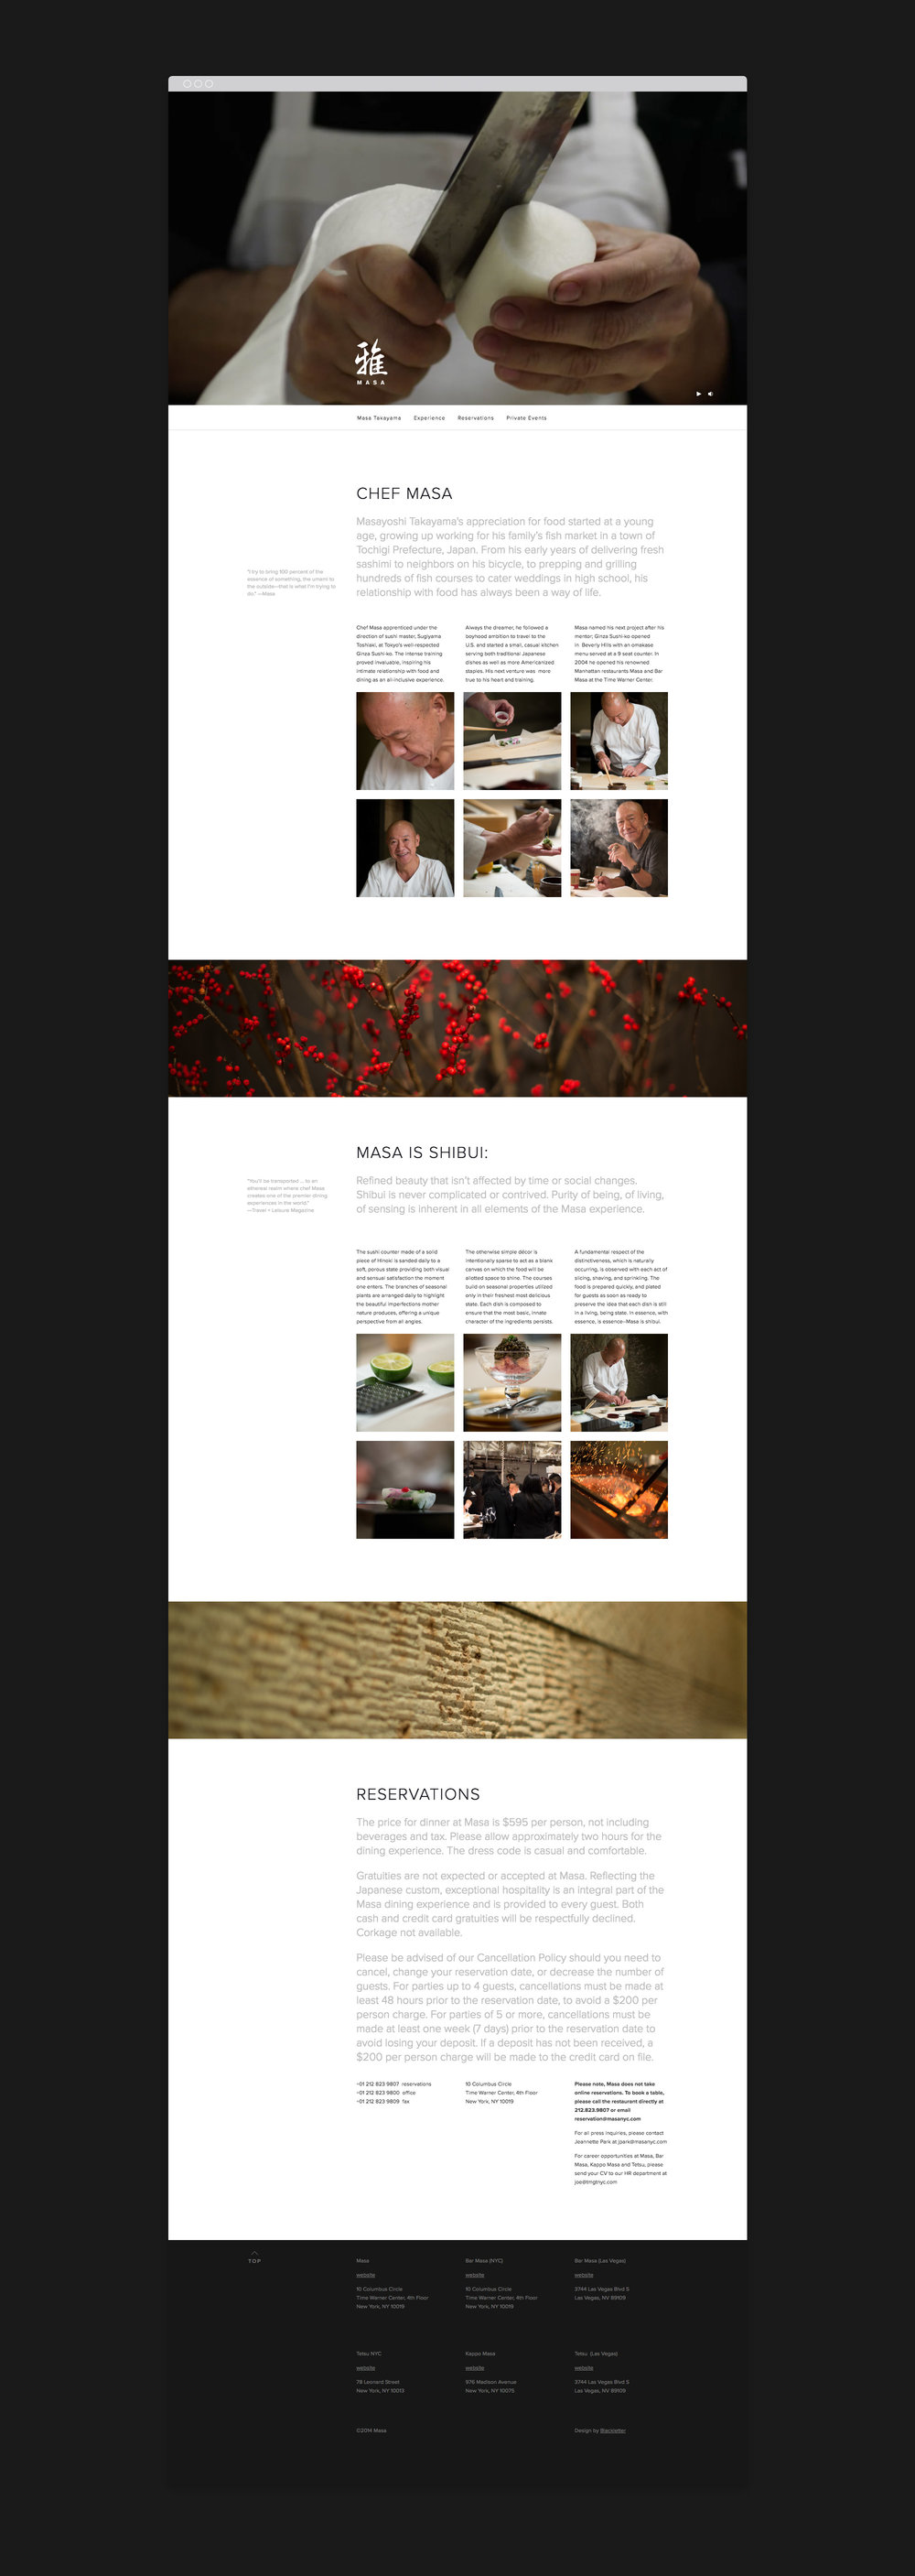 Masa NYC web design, content organization with photo gallery